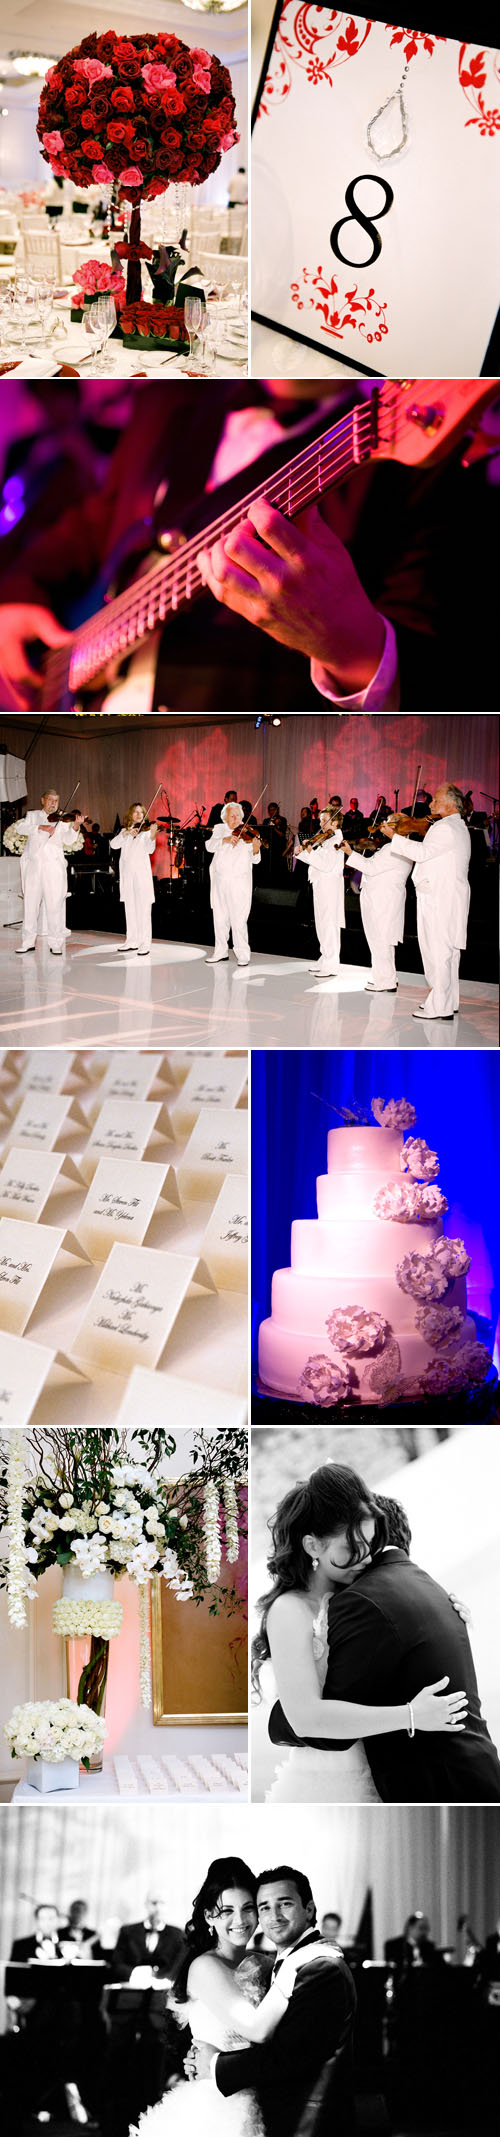 classic southern california real wedding reception at St. Regis Monarch Beach, coordinated by Mindy Weiss, red and white color palette, photos by Yvette Roman Photography